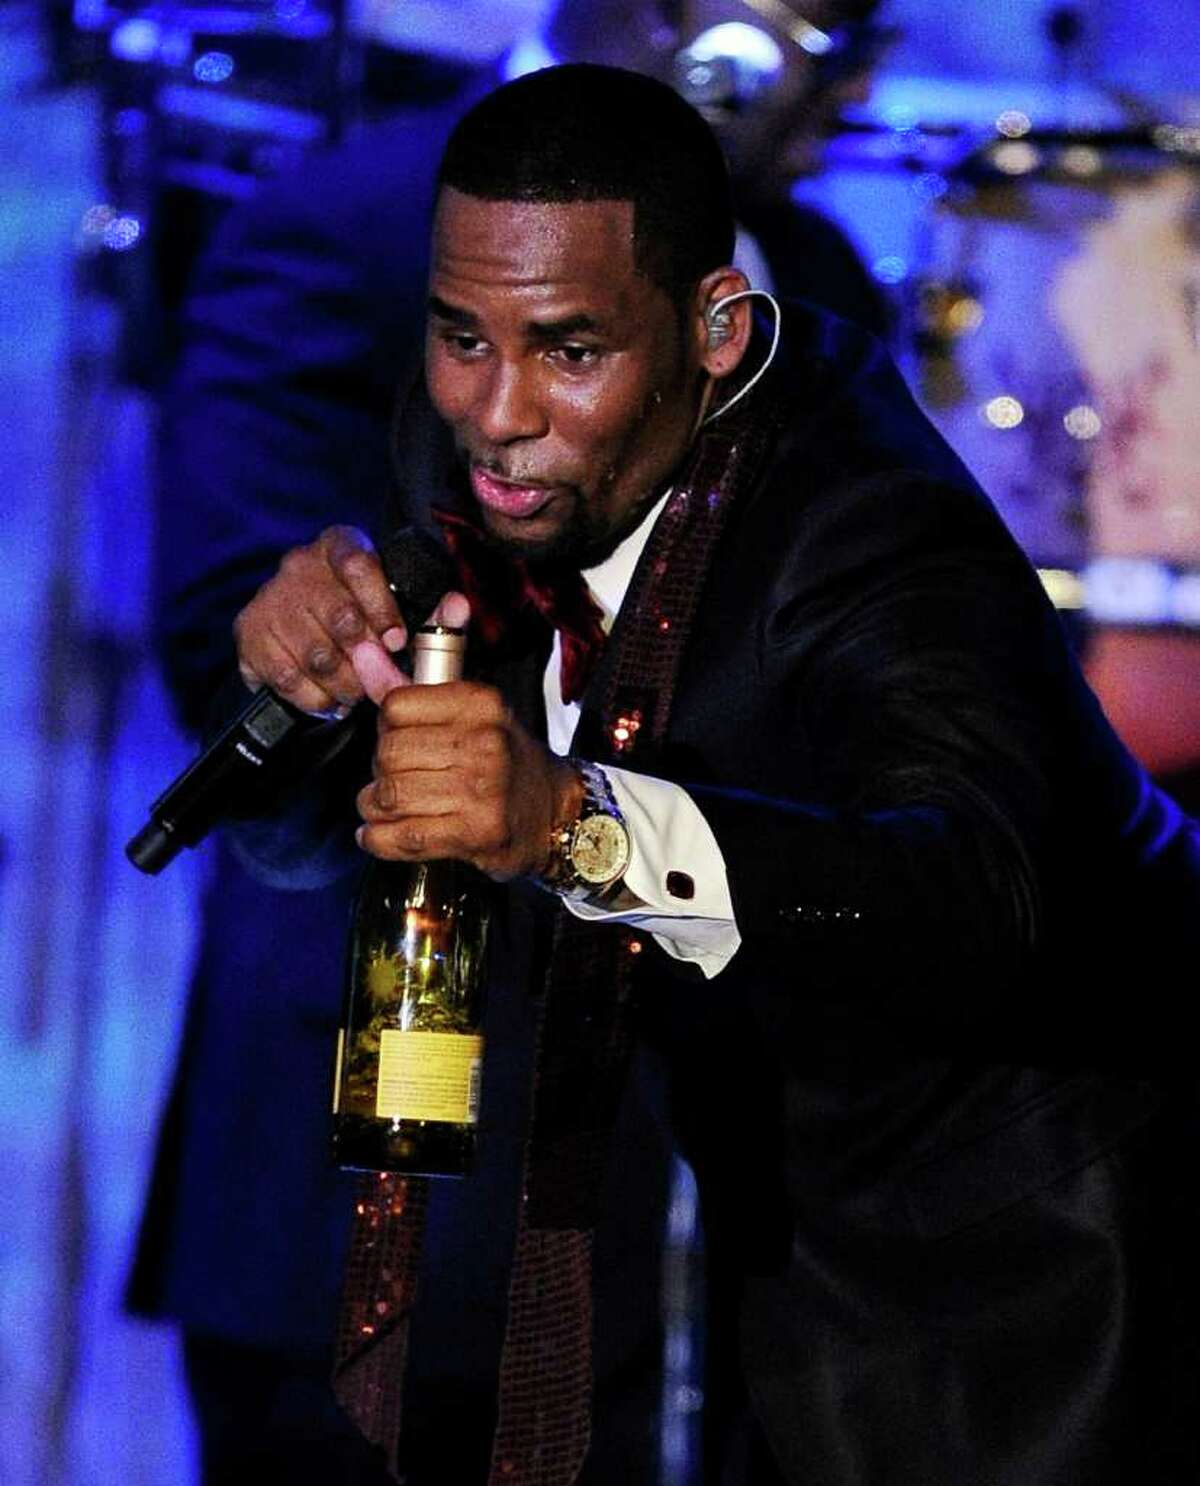 In this Feb. 12, 2011 photo, R. Kelly performs at the pre-Grammy gala & salute in Beverly Hills, Calif. The outrageous musical series started off as five videos for the R&B singer's dramatic cliffhanger songs in 2007. It quickly became a cult classic and he added more chapters and put the accompanying videos on a DVD also teamed up with IFC to premiere it. (AP Photo/Mark J. Terrill)